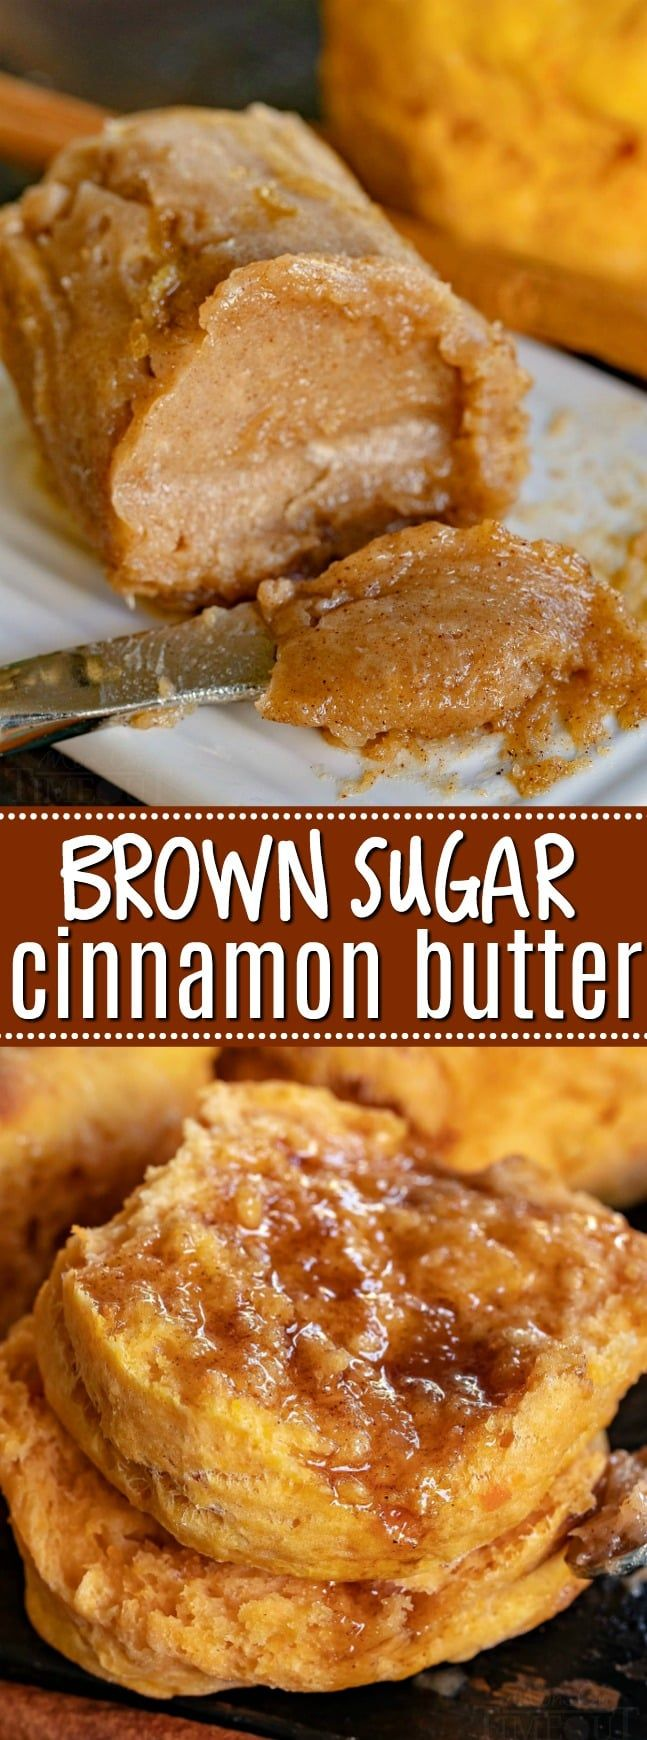 Brown Sugar Cinnamon Butter